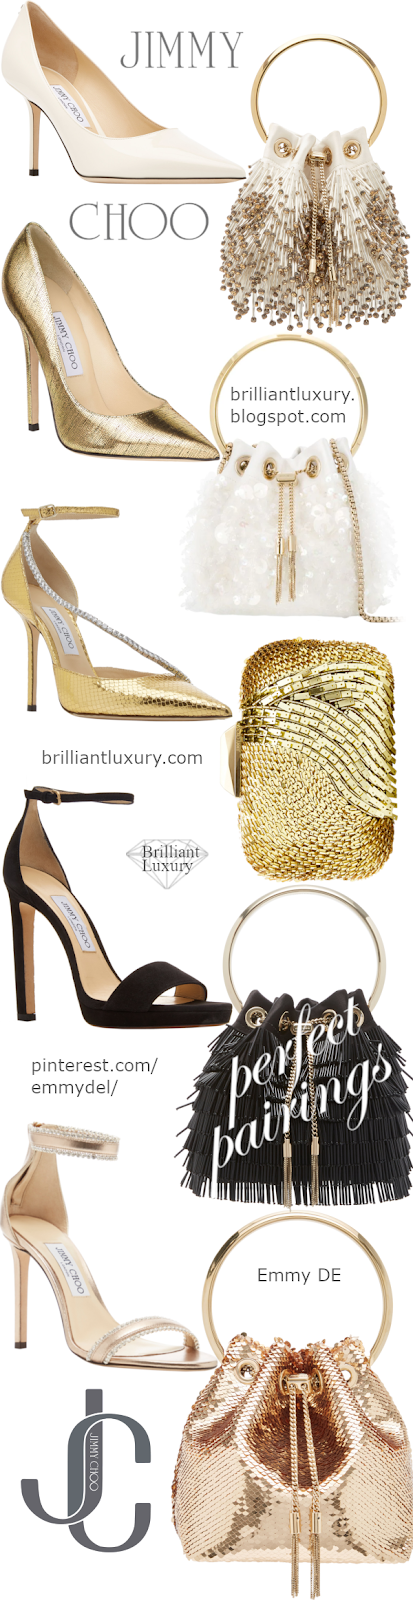 Perfect Pairings ♦ Jimmy Choo Evening Shoes & Bags #brilliantluxuy